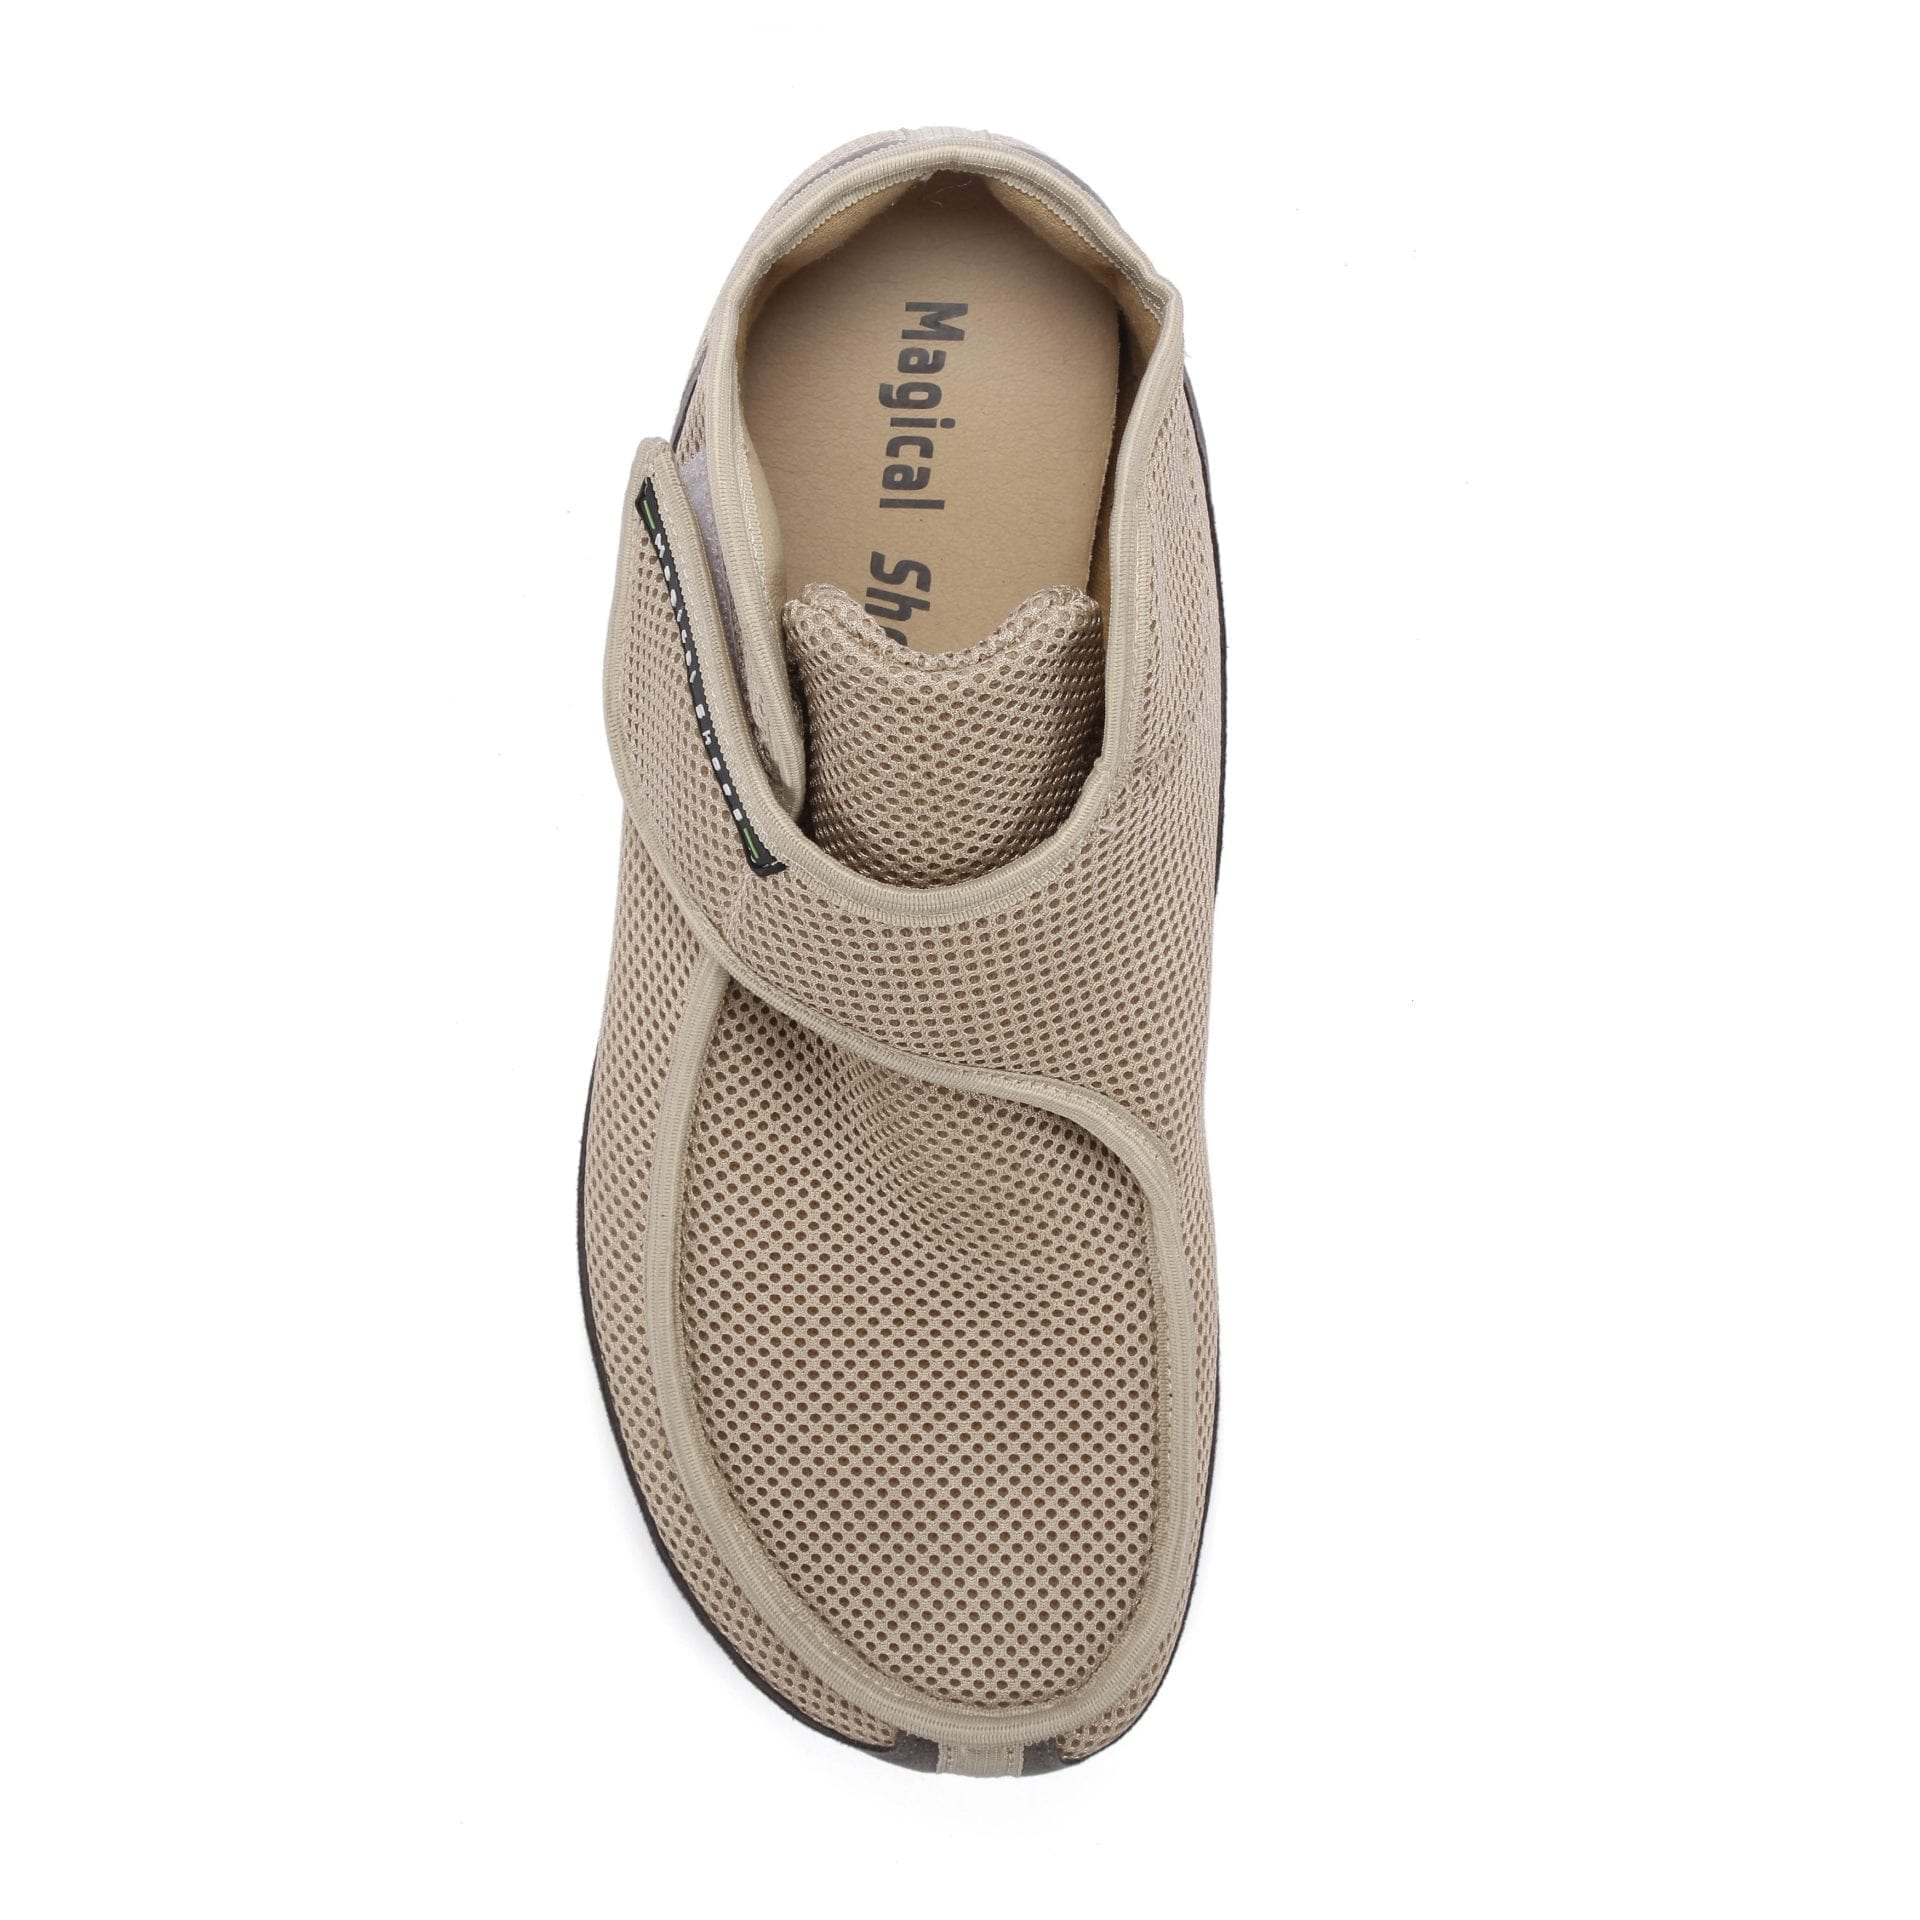 breathable light shoes shoes for the sick feet healthy feet wide shoes comfortable shoes wide memory foam Velcro footwear